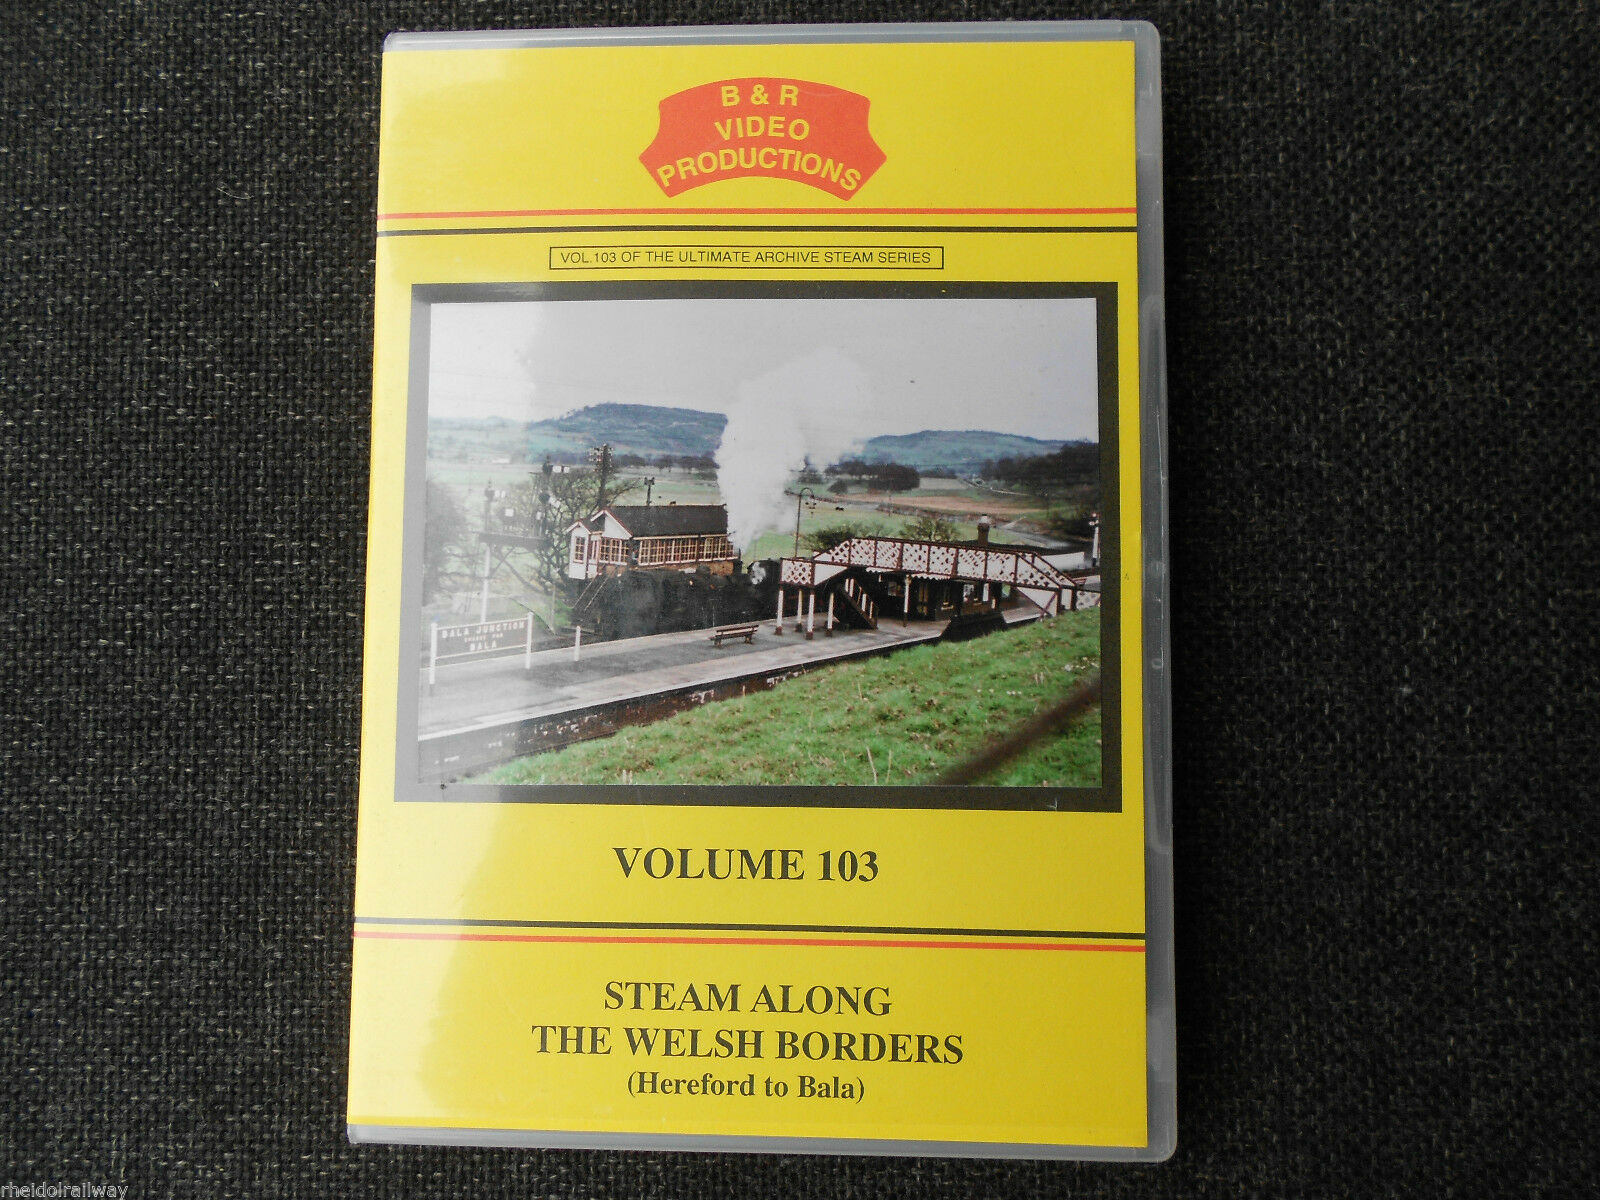 Brecon, Oswestry, Steam Along The Welsh Borders, Hereford to Bala B&R Vol103 DVD - The Vale of Rheidol Railway